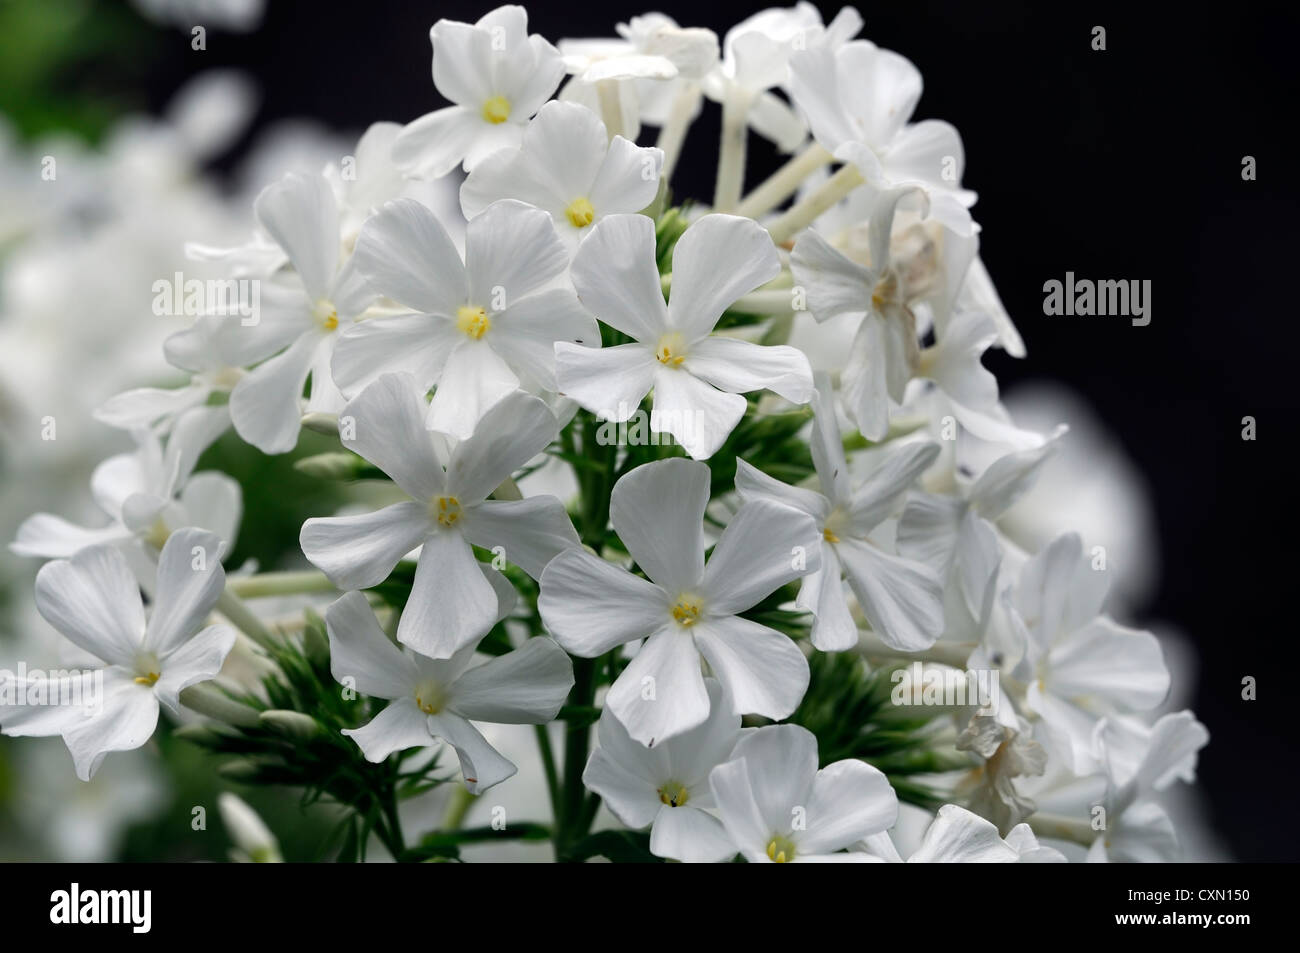 Phlox paniculata fujiyama white flowers flower spike scented stock phlox paniculata fujiyama white flowers flower spike scented herbaceous perennial plant stock photo dhlflorist Image collections